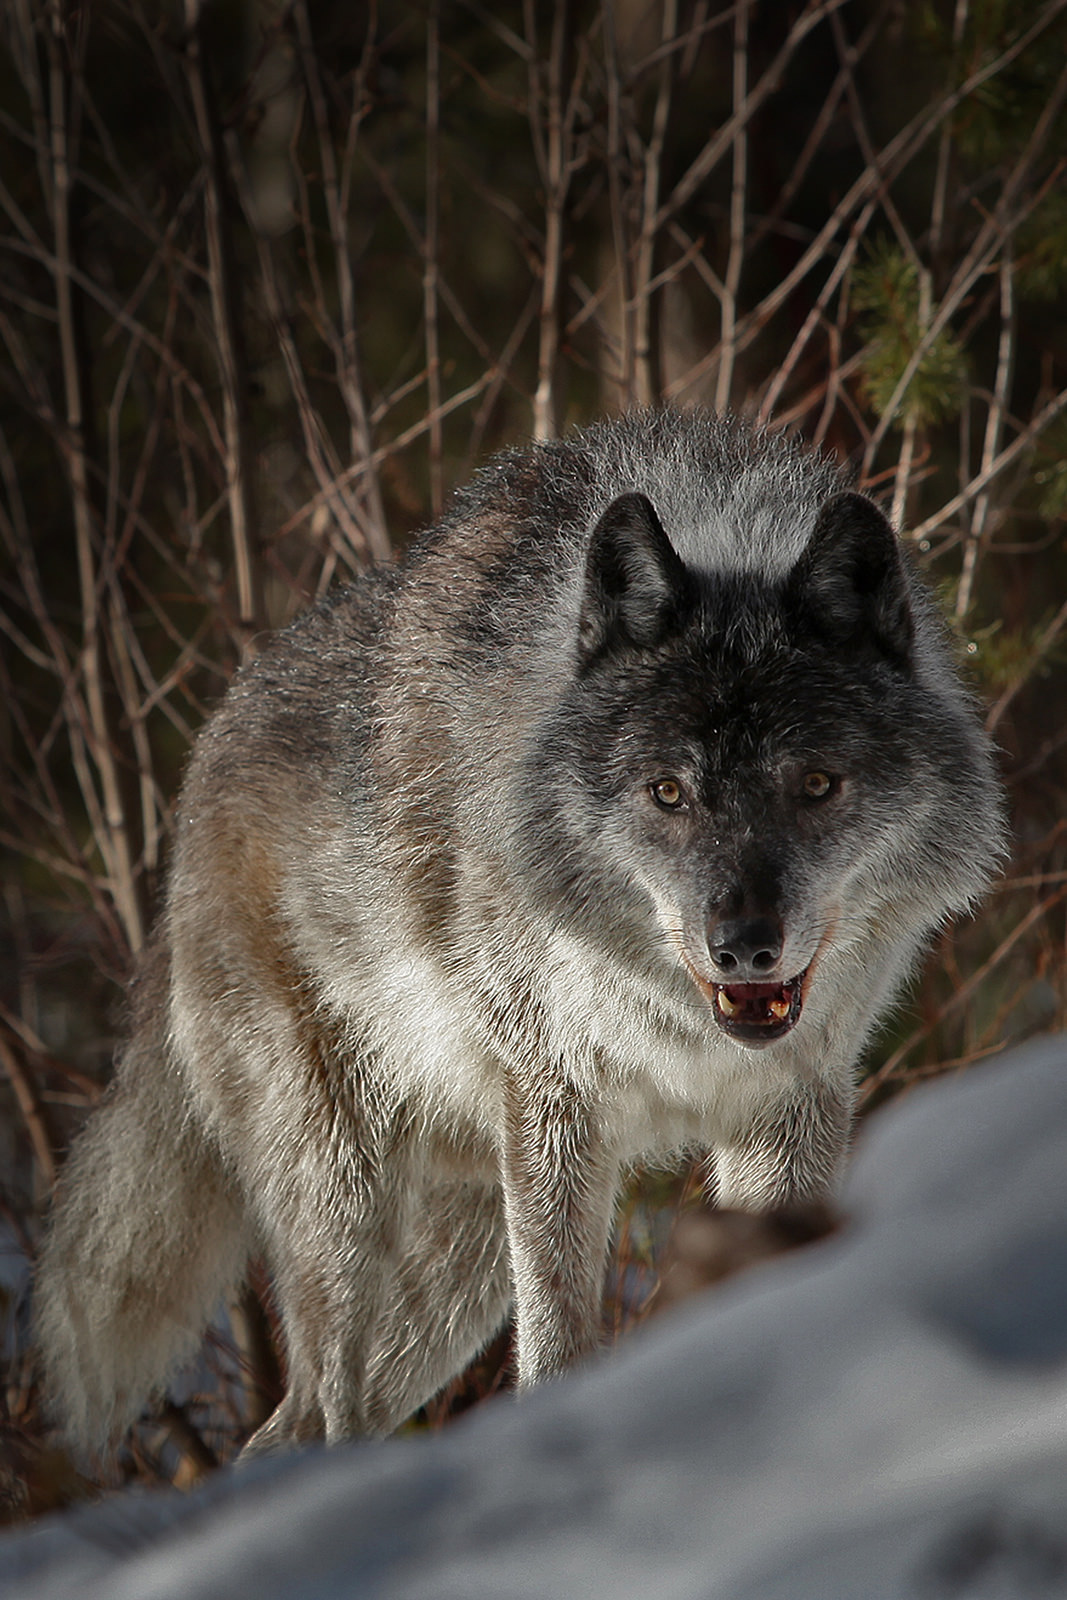 Forever the 'bad guy', we now know that wolves are essential to healthy rivers. How Wolves Change Rivers - YouTube https://www.youtube.com/watch?v=ysa5OBhXz-Q